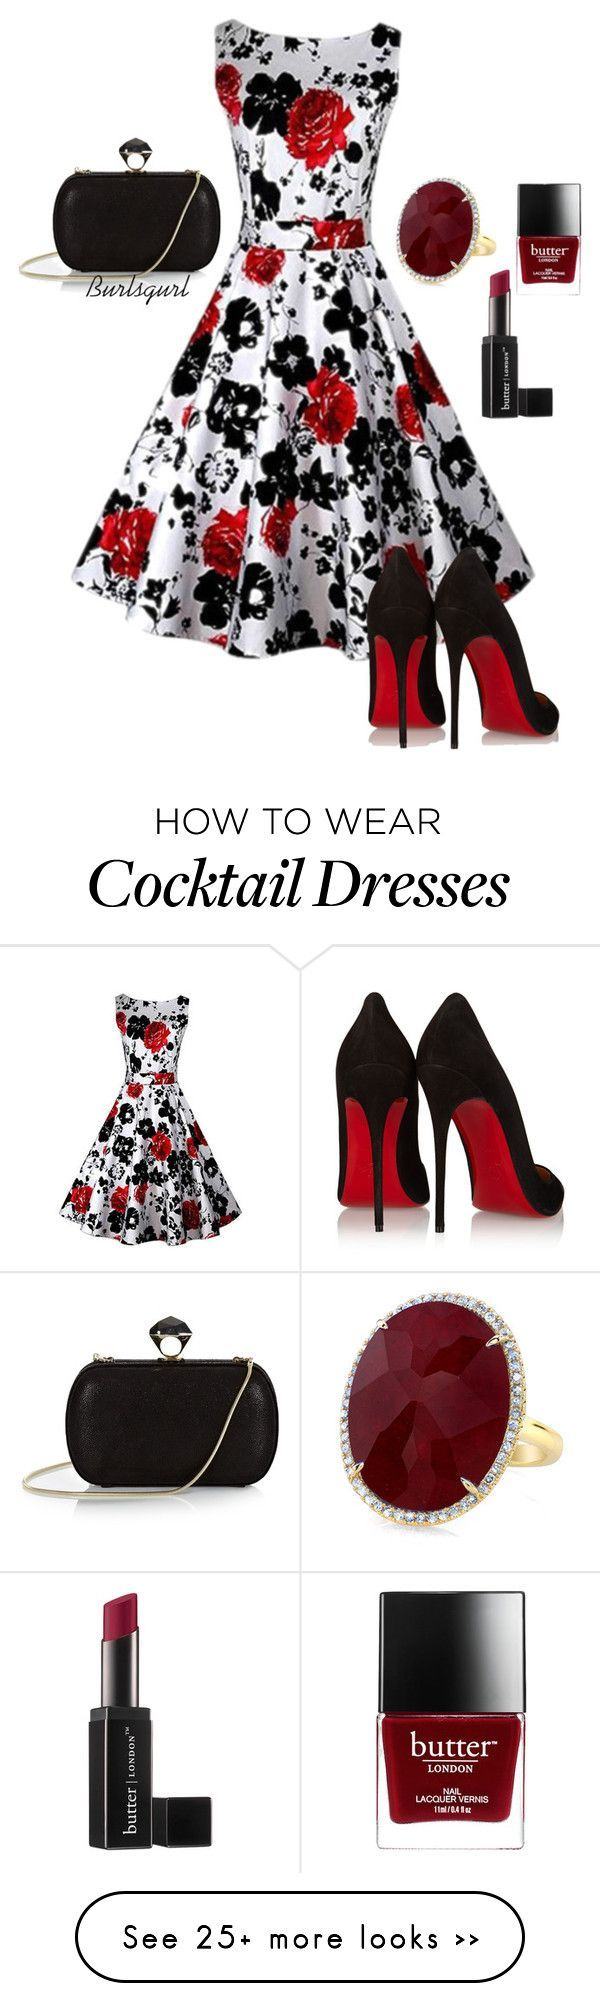 """Ruby"" by burlsgurl on Polyvore featuring Christian Louboutin, DVF and Butter London"